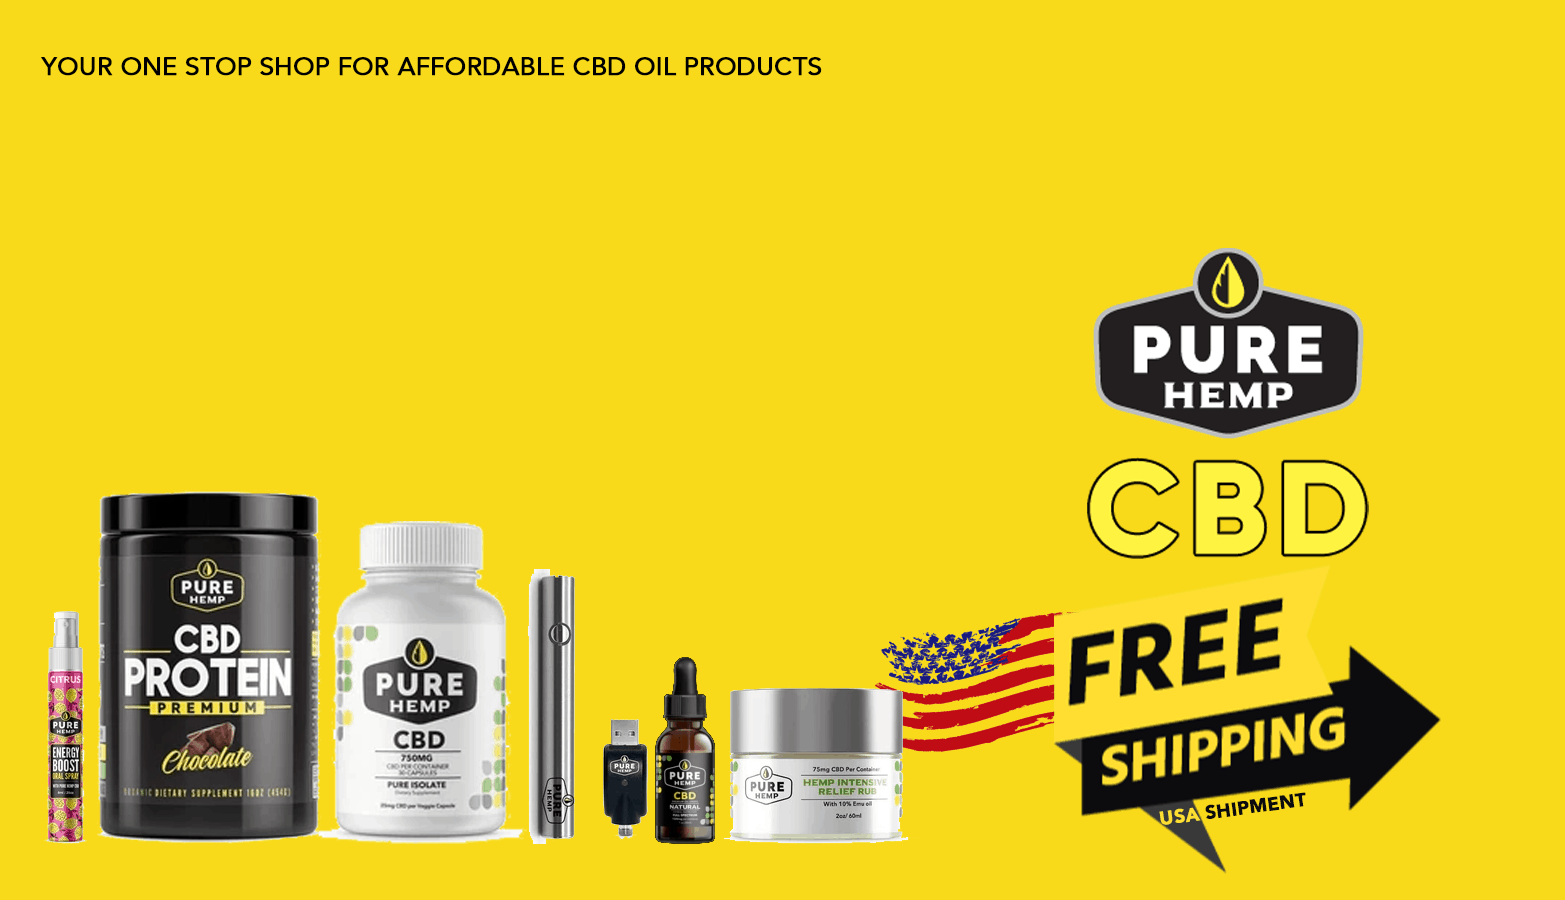 Pure Hemp CBD Coupon Code Offer Website